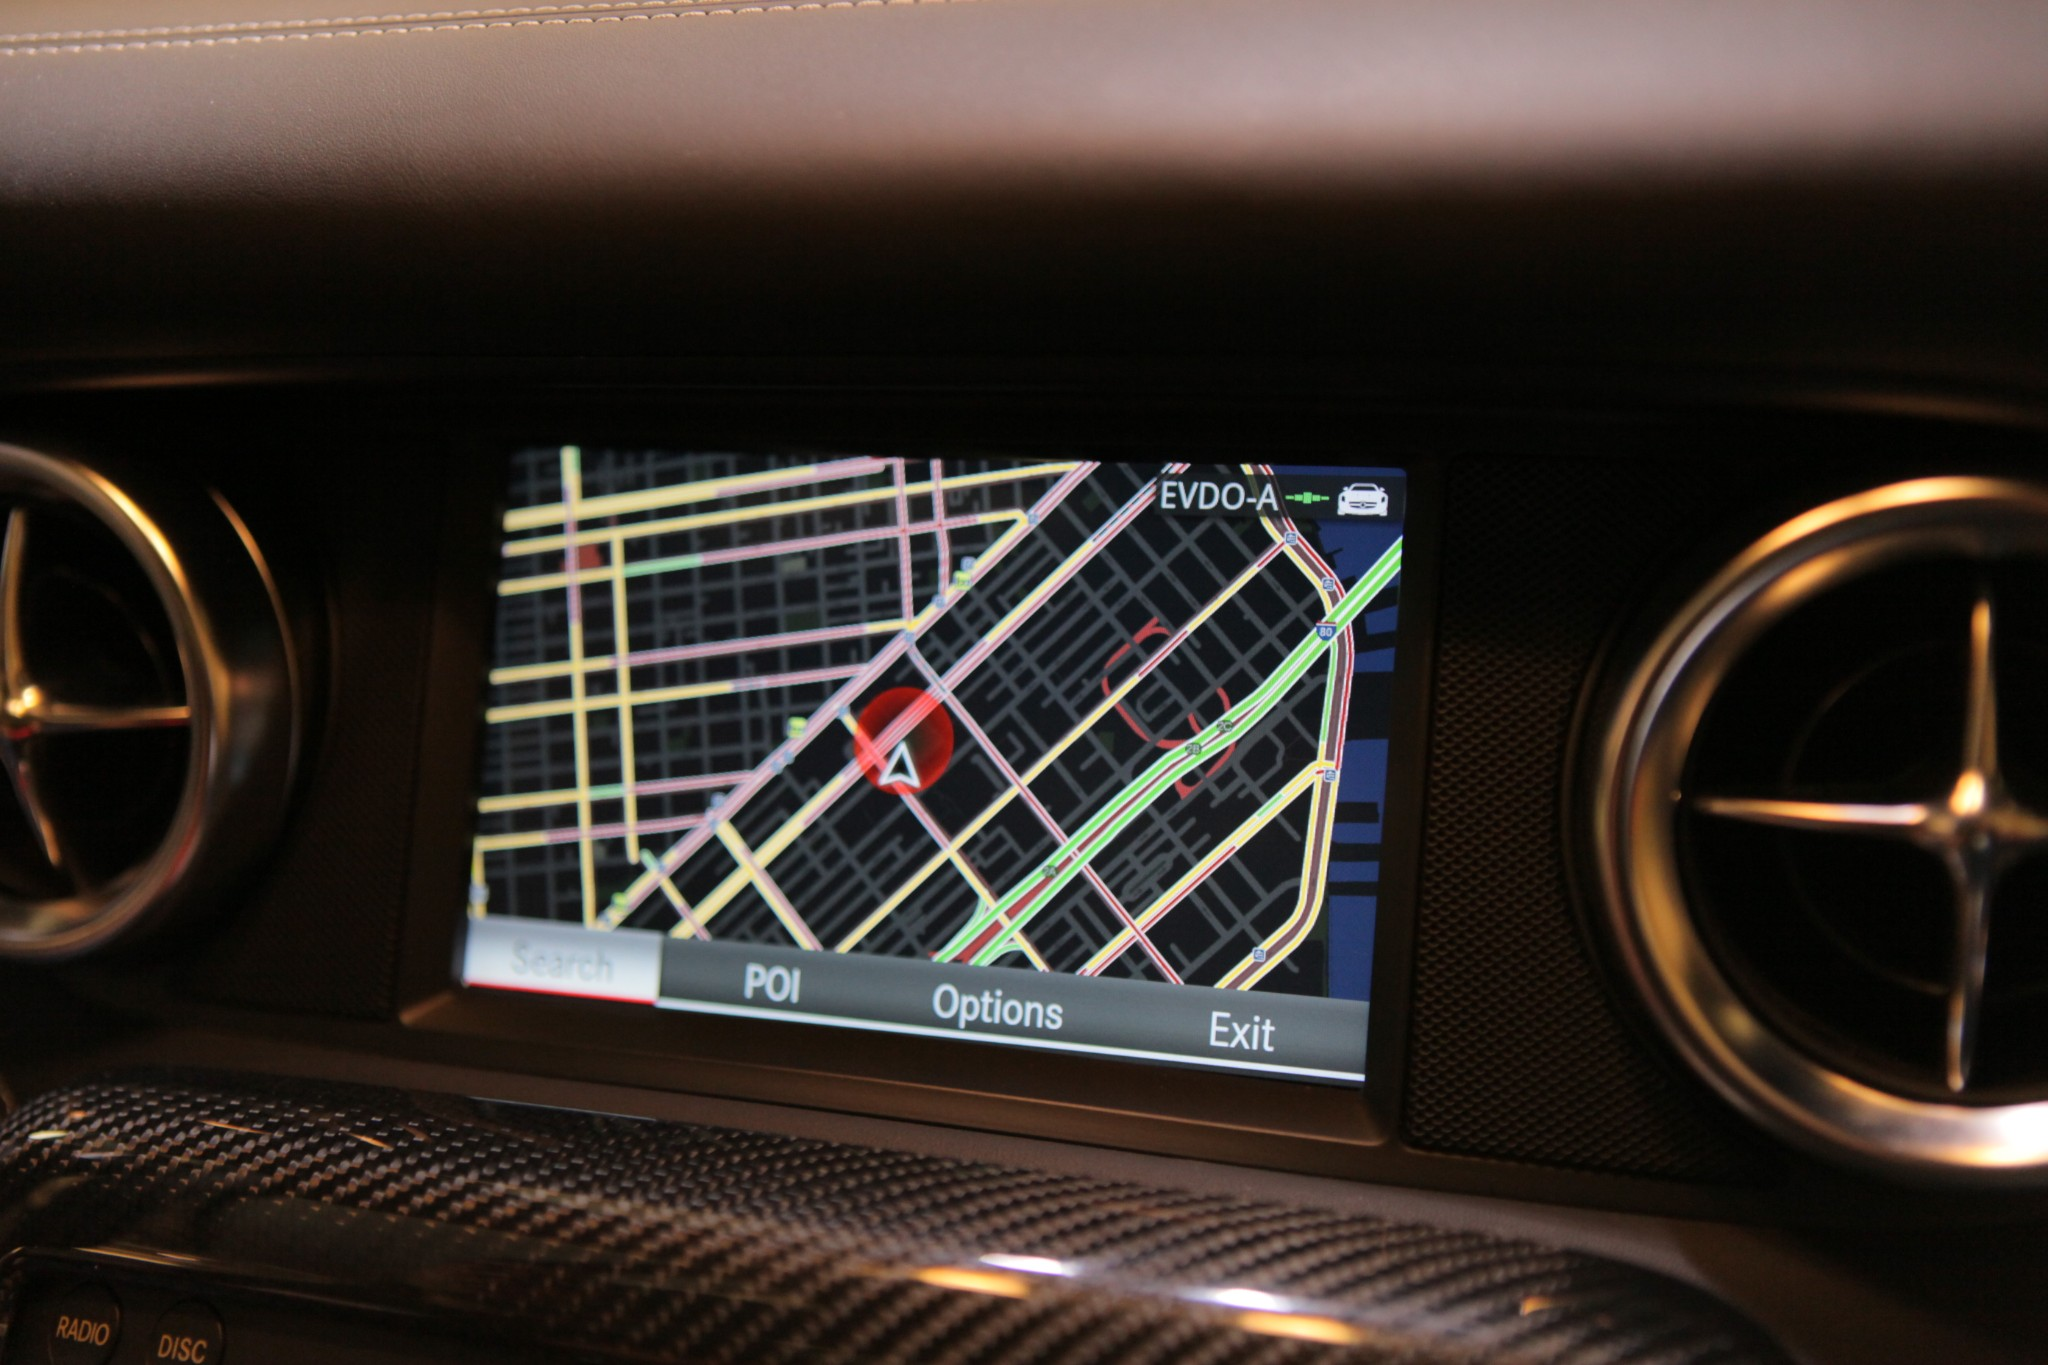 Google Maps in the Mercedes-Benz SLS AMG – Photo Gallery